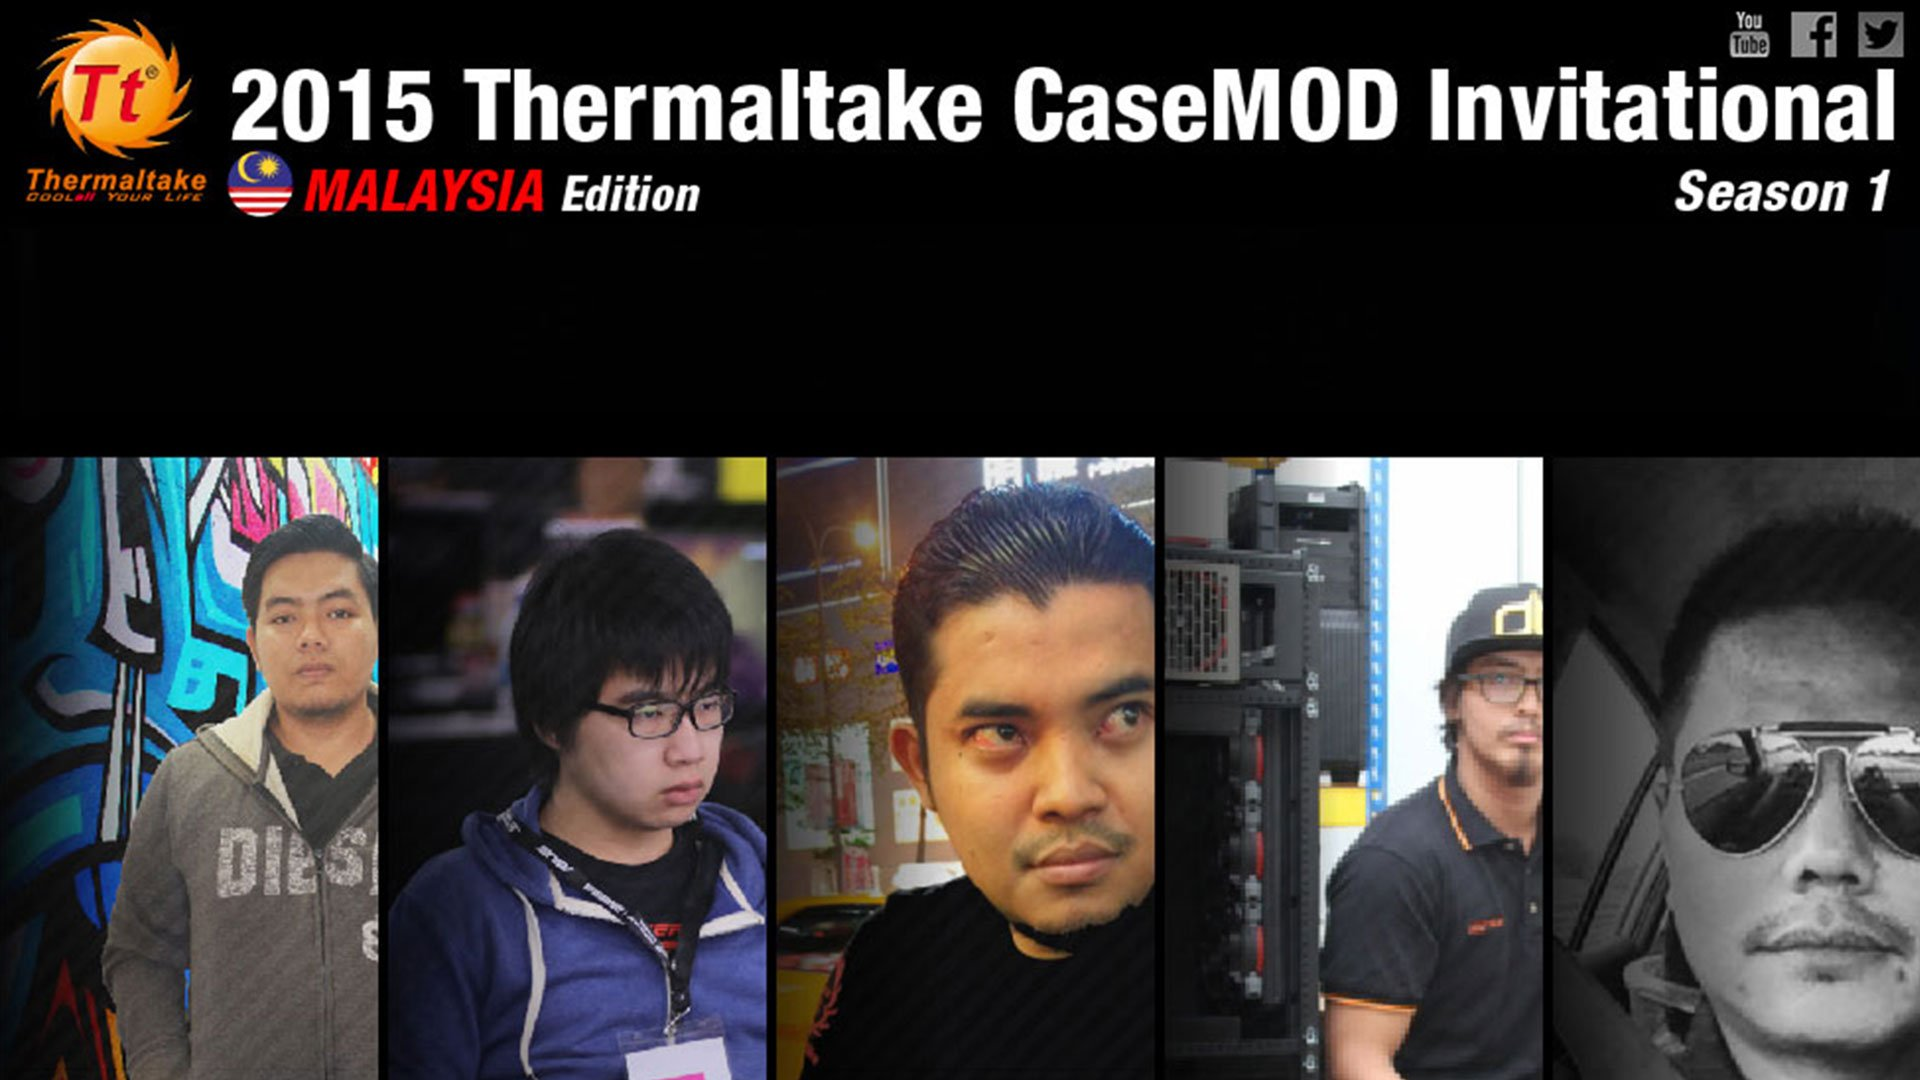 Week 5 Report of 2015 Thermaltake CaseMOD Invitational – Malaysia Edition 4